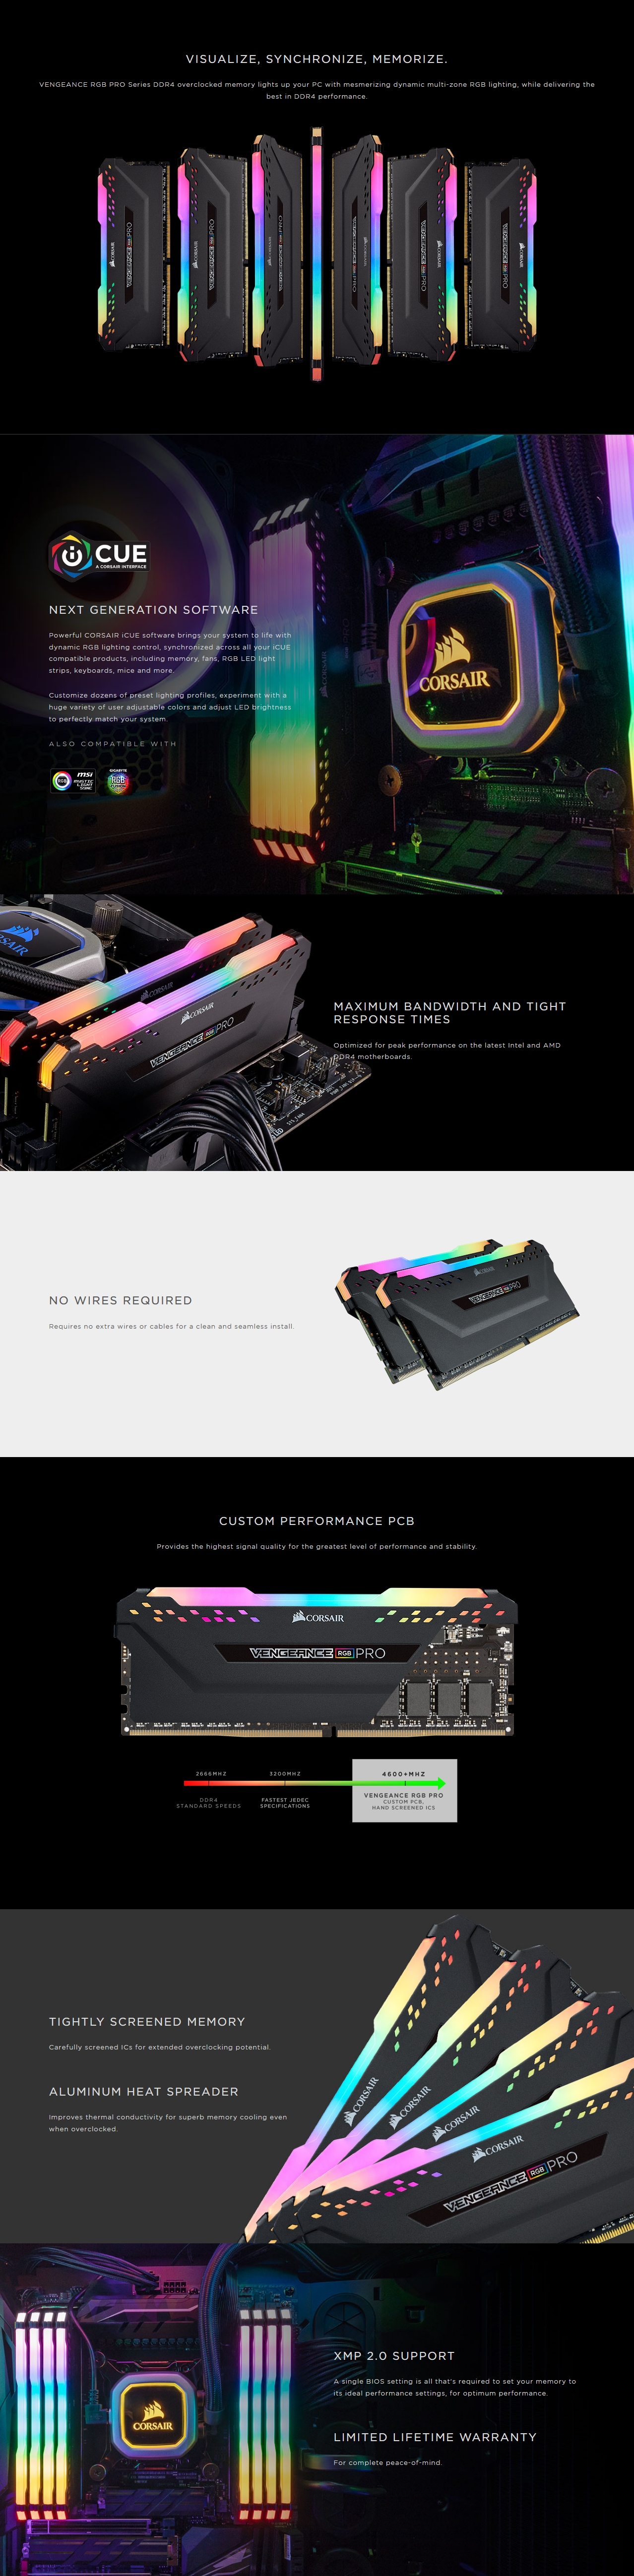 A large marketing image providing additional information about the product Corsair 16GB Kit (2x8GB) DDR4 Vengeance RGB PRO 3600Mhz C18 - Additional alt info not provided